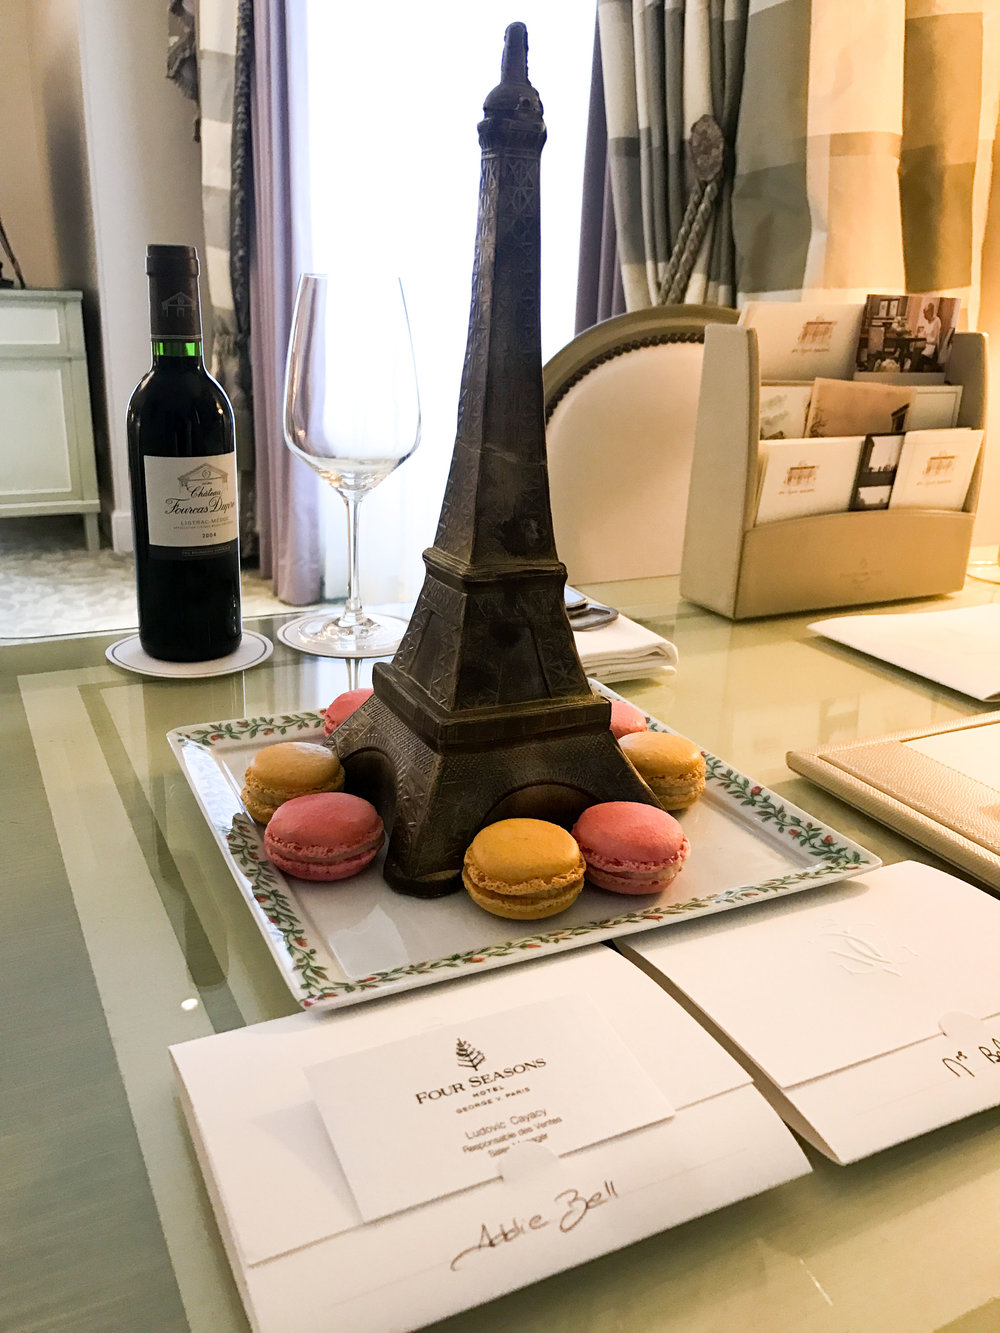 Four Seasons_Paris_Trip_to_Paris-2315.jpg